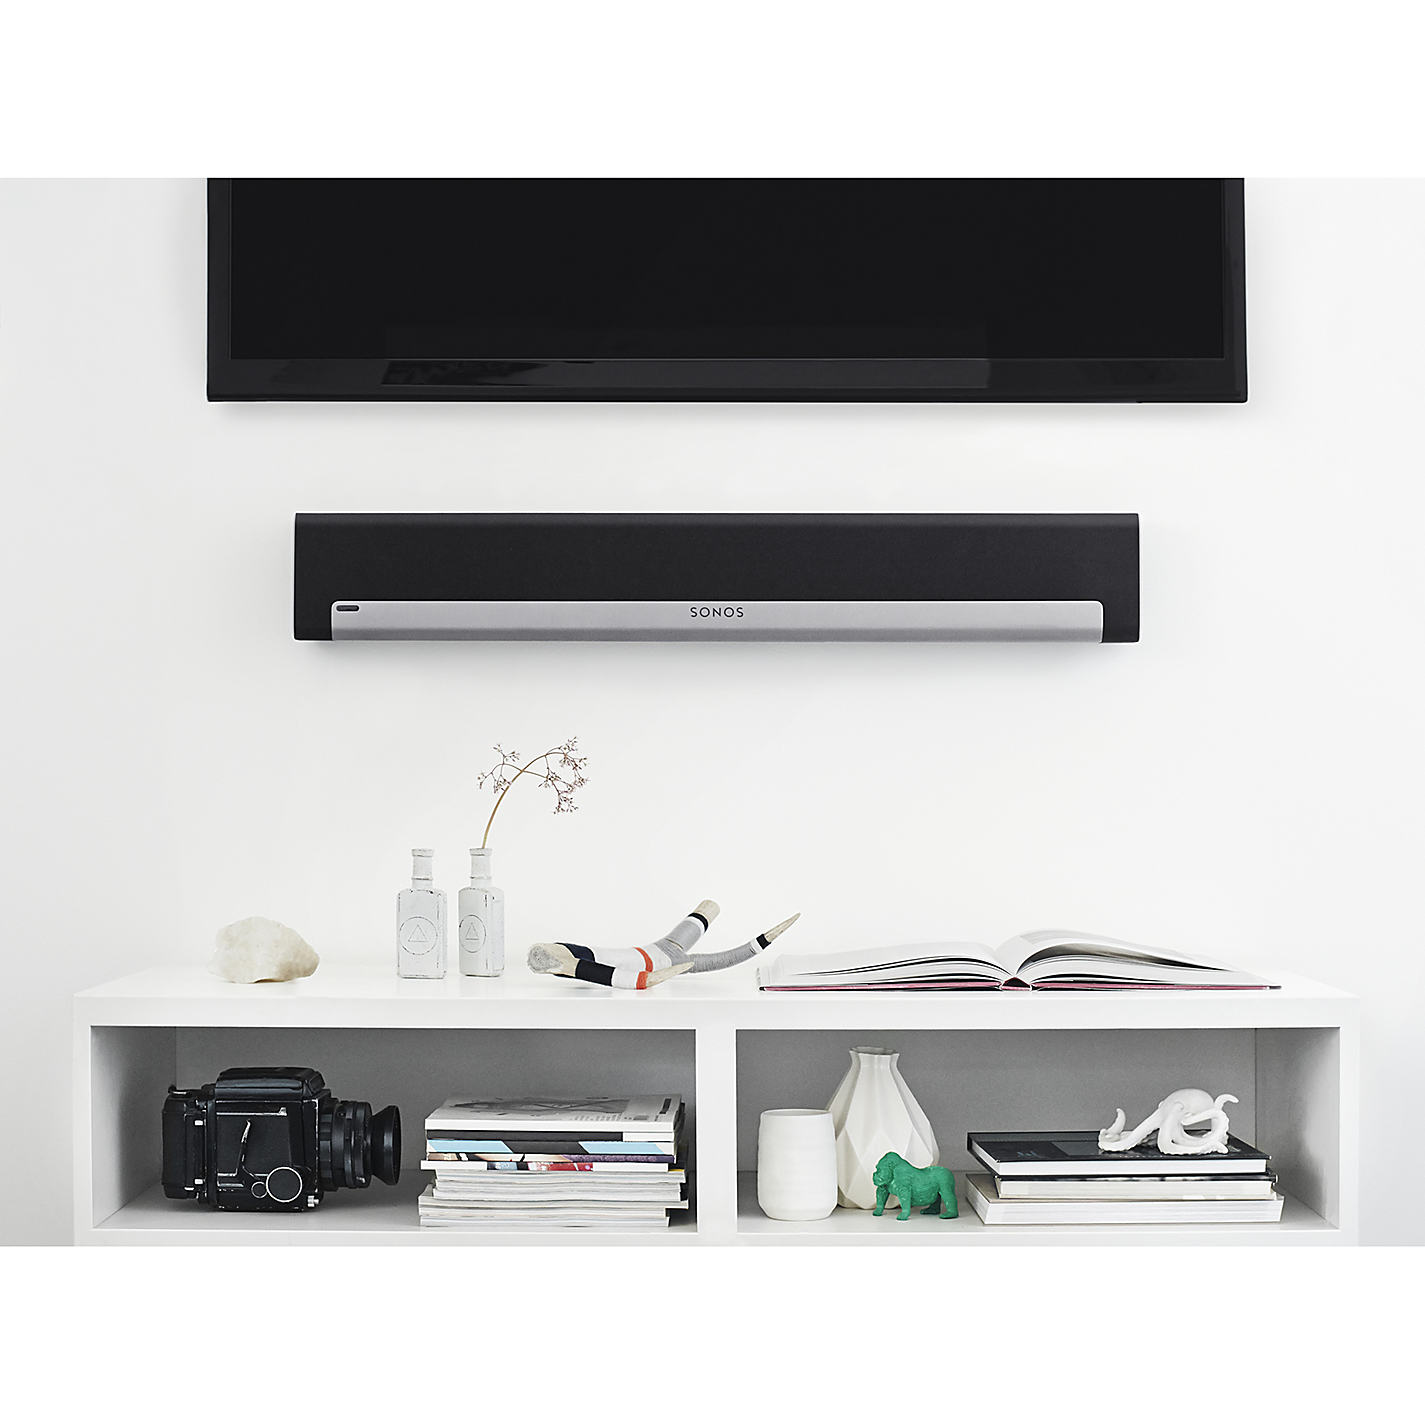 Sonos playbar, soundbar, https://screamingwifi.com, wifi, wi-fi, internet service, Home audio system, multi-room music system, sonos, casatunes, home speakers, house speakers, house sound system, https://www.automated-lifestyles.com, automated lifestyles, automated lifestyles Moscow pa, automated lifestyles Pennsylvania, home automation, home monitoring, automated home, automatic home, smart home, automatic window blinds, automatic window shades, surveillance camera, home security, business security, office security system, security system, security camera, home theater, home theater design, home theatre, home network, home control, control home ipad, control home iphone, home speakers, Lutron lights, Lutron lighting, Lighting control, automatic lighting, Multi-room music, Whole house music, Speakers, Audio visual, room music, Meeting room av, Meeting room audio visual, meeting room projector, meeting room screen, office projector, conference room, boardroom, automated meeting room, automatic meeting room, Window candles